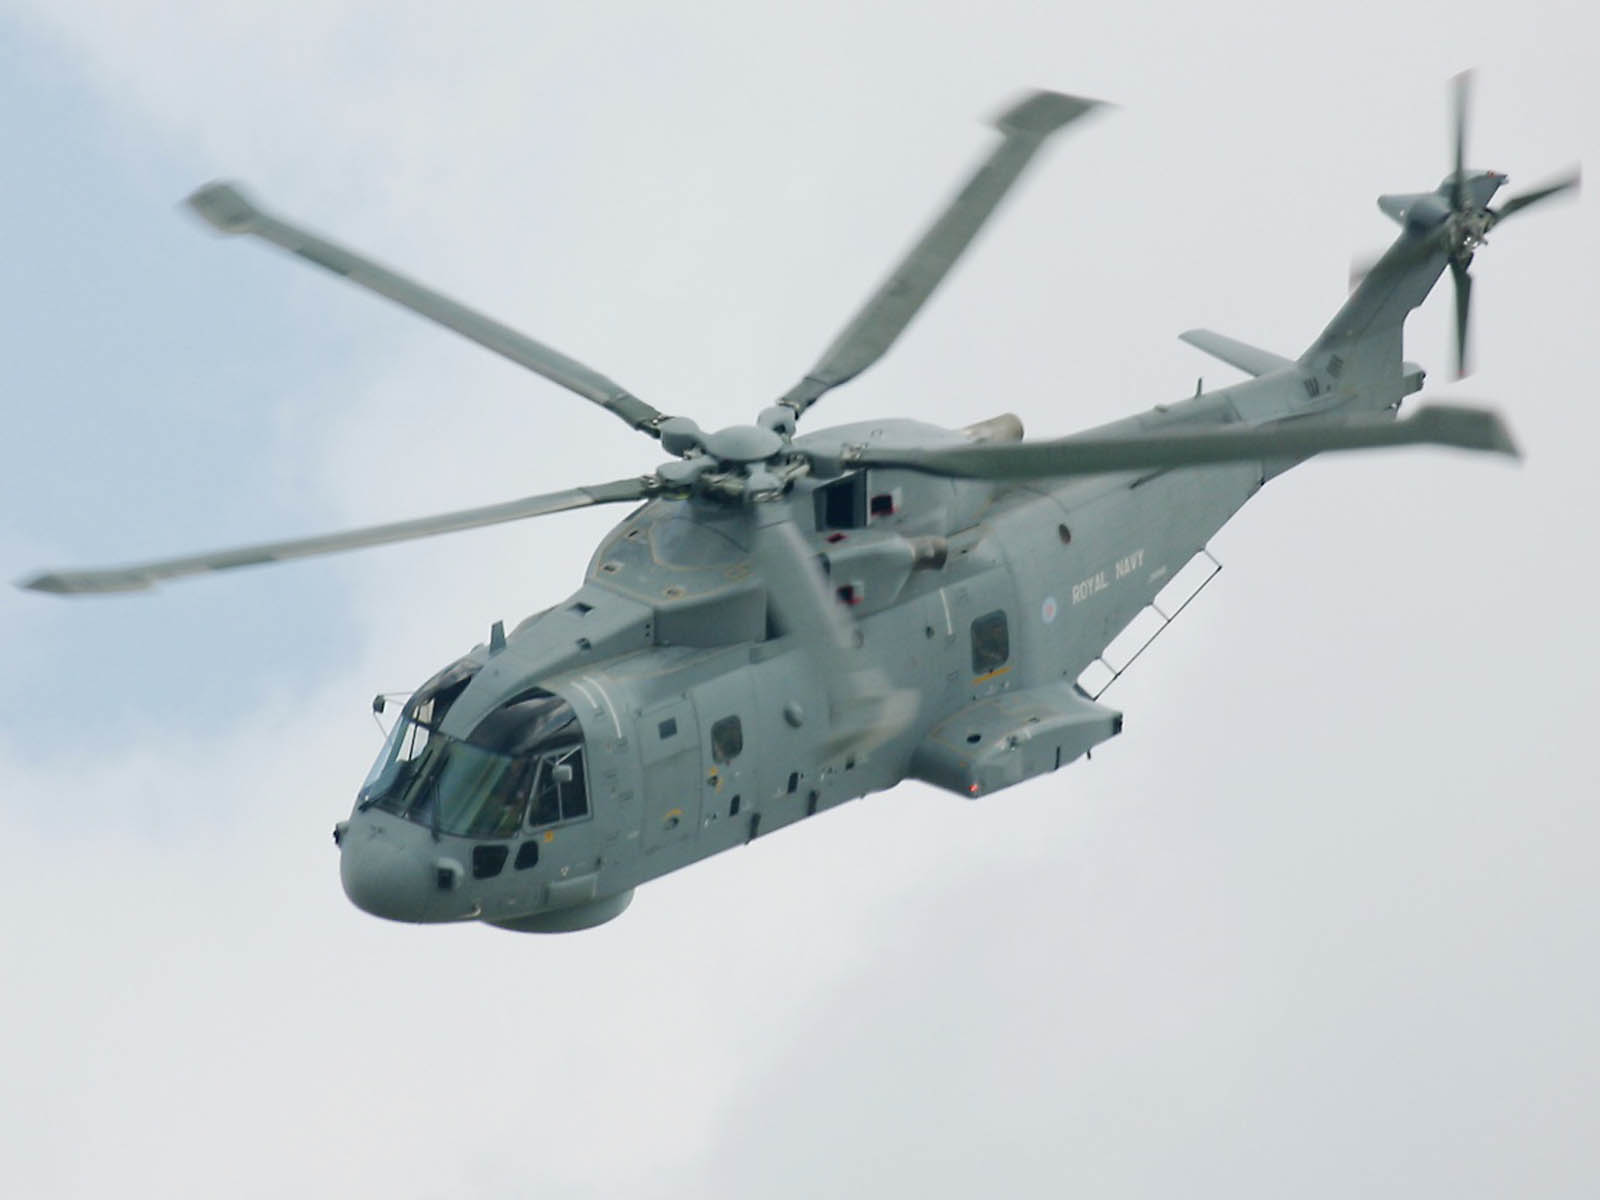 Tag Military Helicopter Wallpapers Images Photos Pictures and 1600x1200